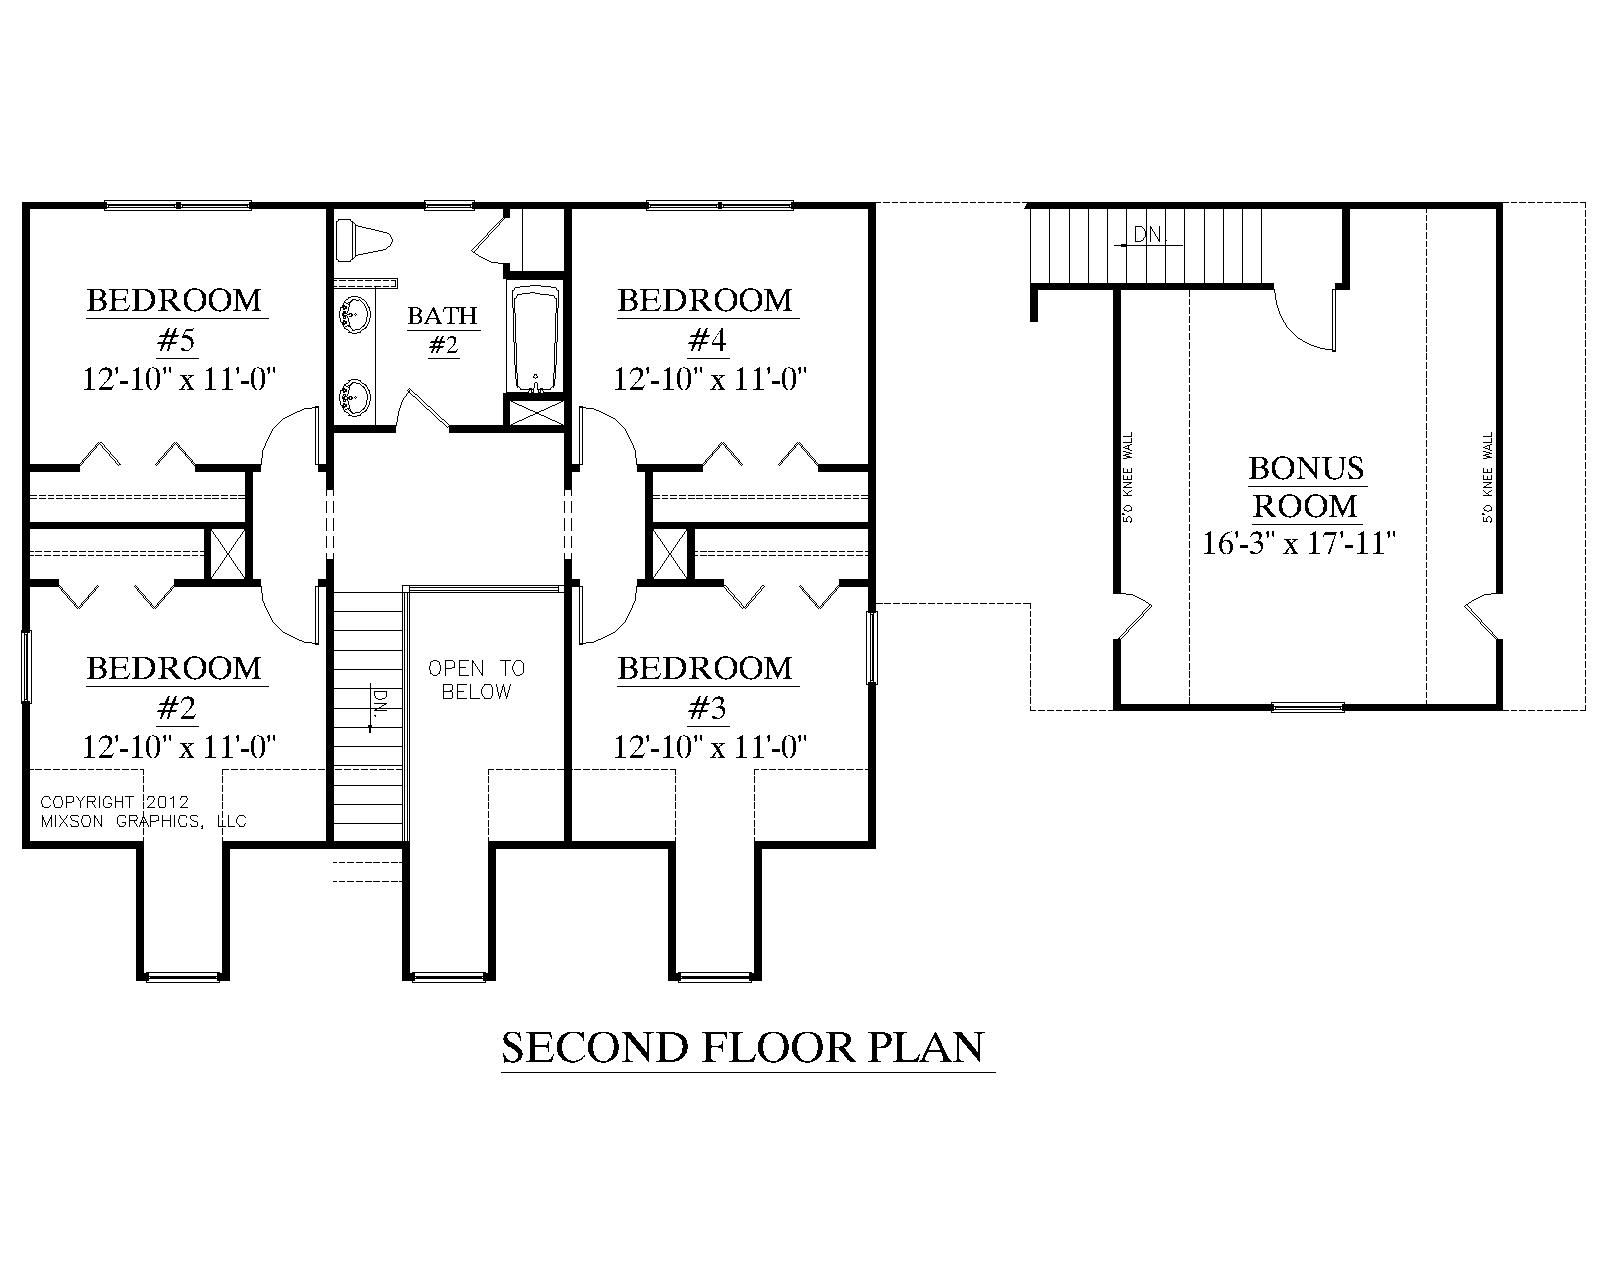 House plan 2341 a montgomery a second floor plan for House plans with master bedroom on first floor